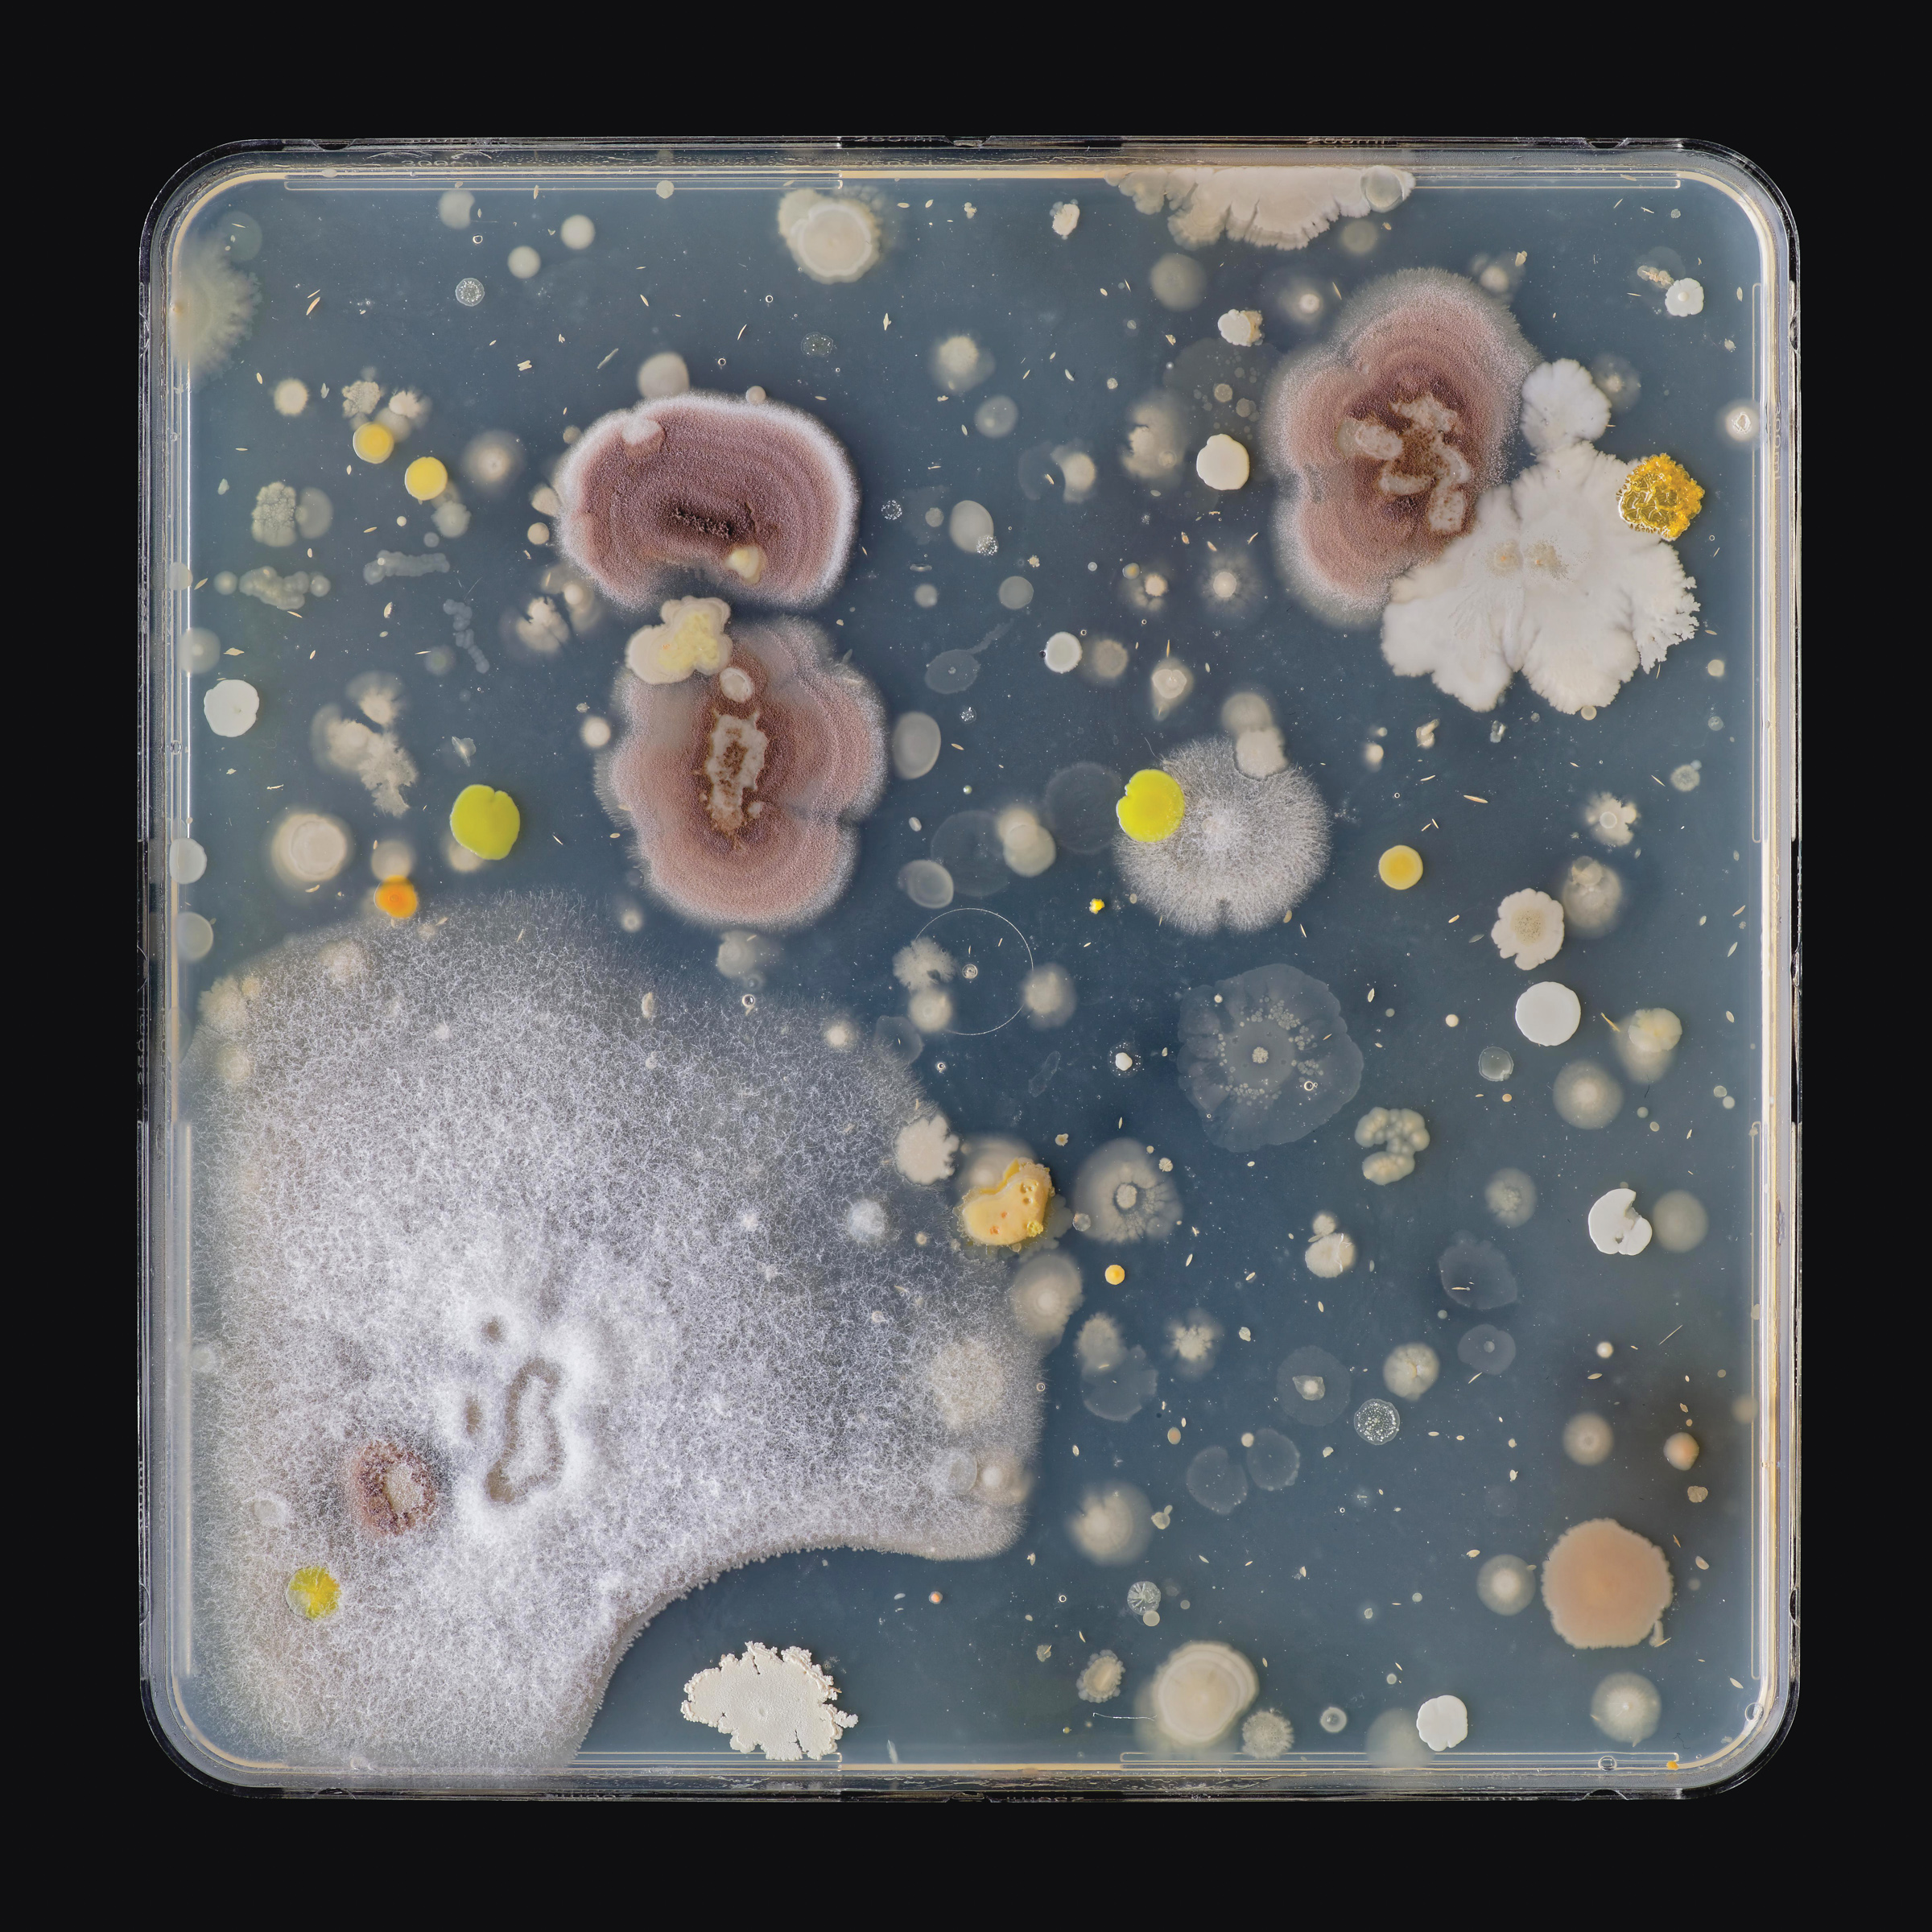 Jon Sasaki, Microbes Swabbed From A Palette Used By Frederick Varley, 2020. Courtesy of the artist and Clint Roenisch Gallery